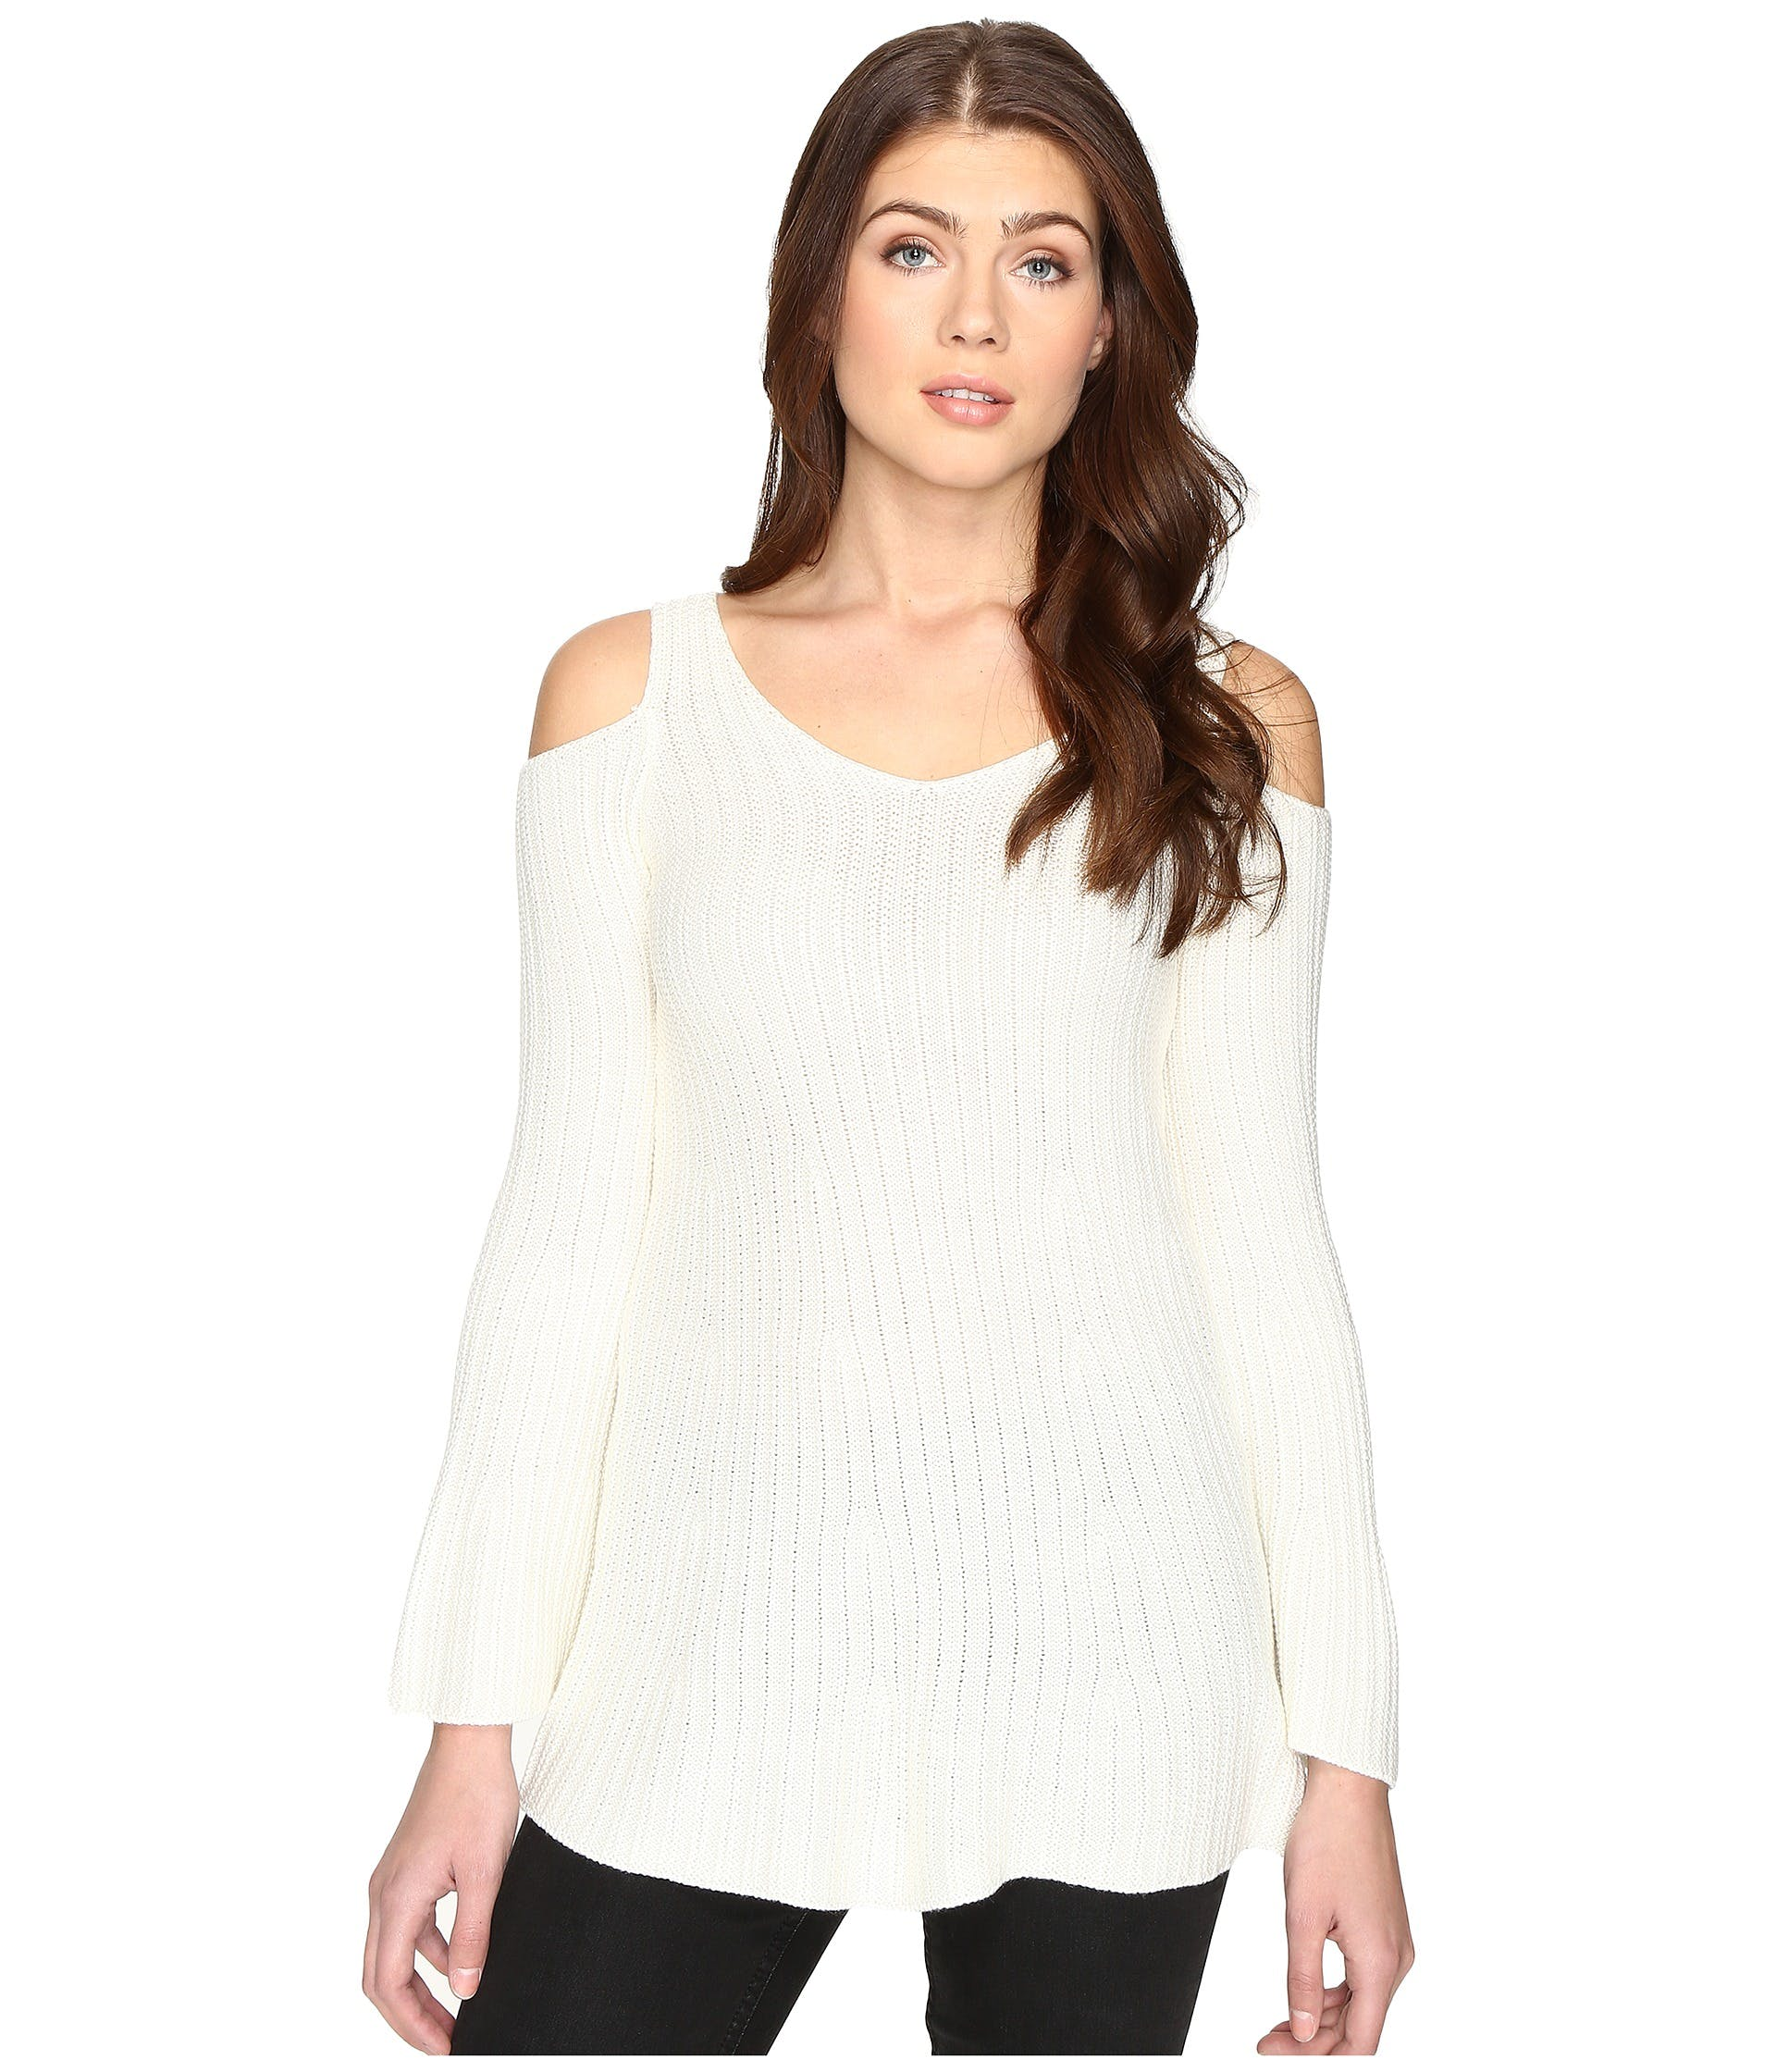 catherine malandrino zappos cashemere sweater under  100 chicago